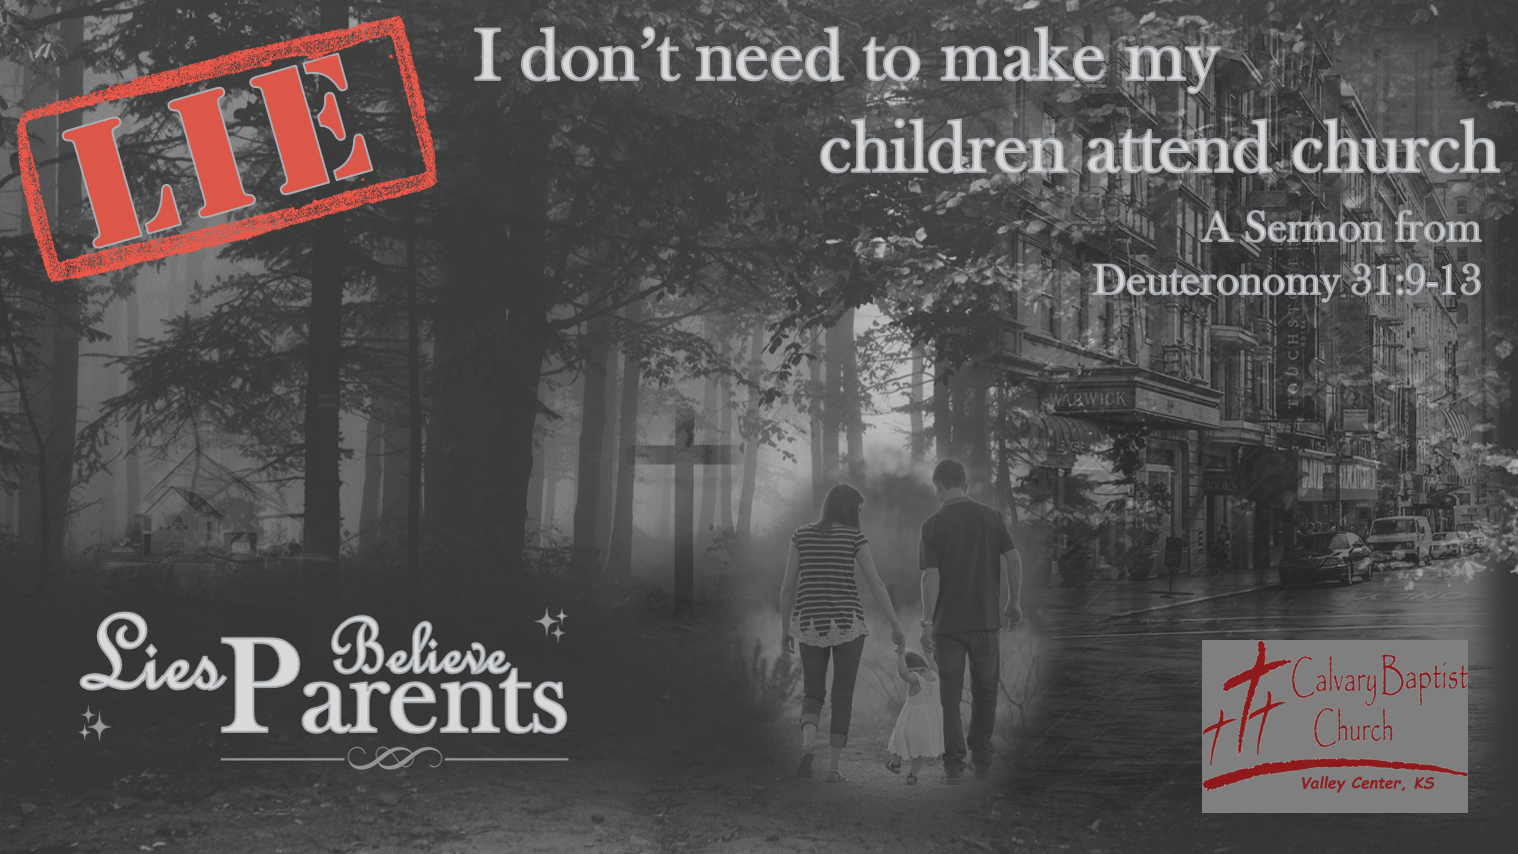 I don't need to make my children attend church